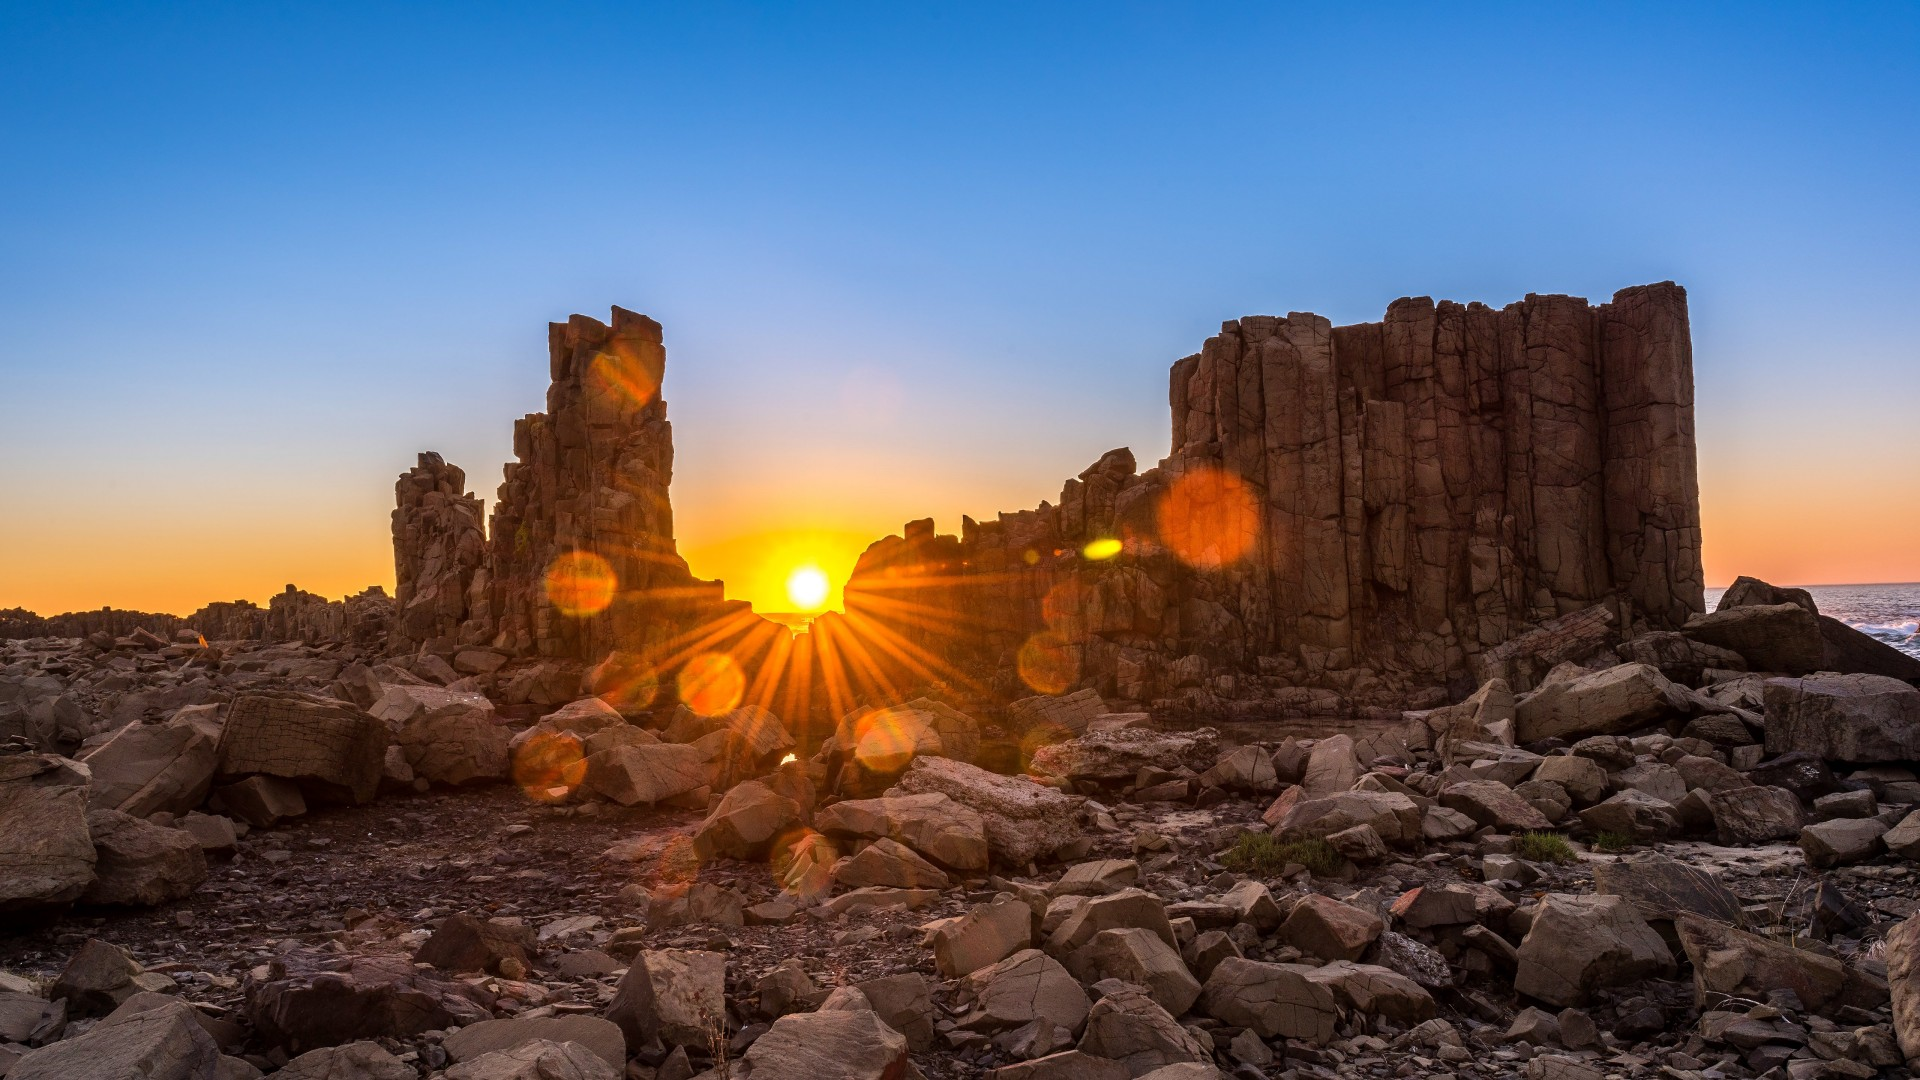 Sunrise Over Bombo Headland, Australia Wallpaper for Desktop 1920x1080